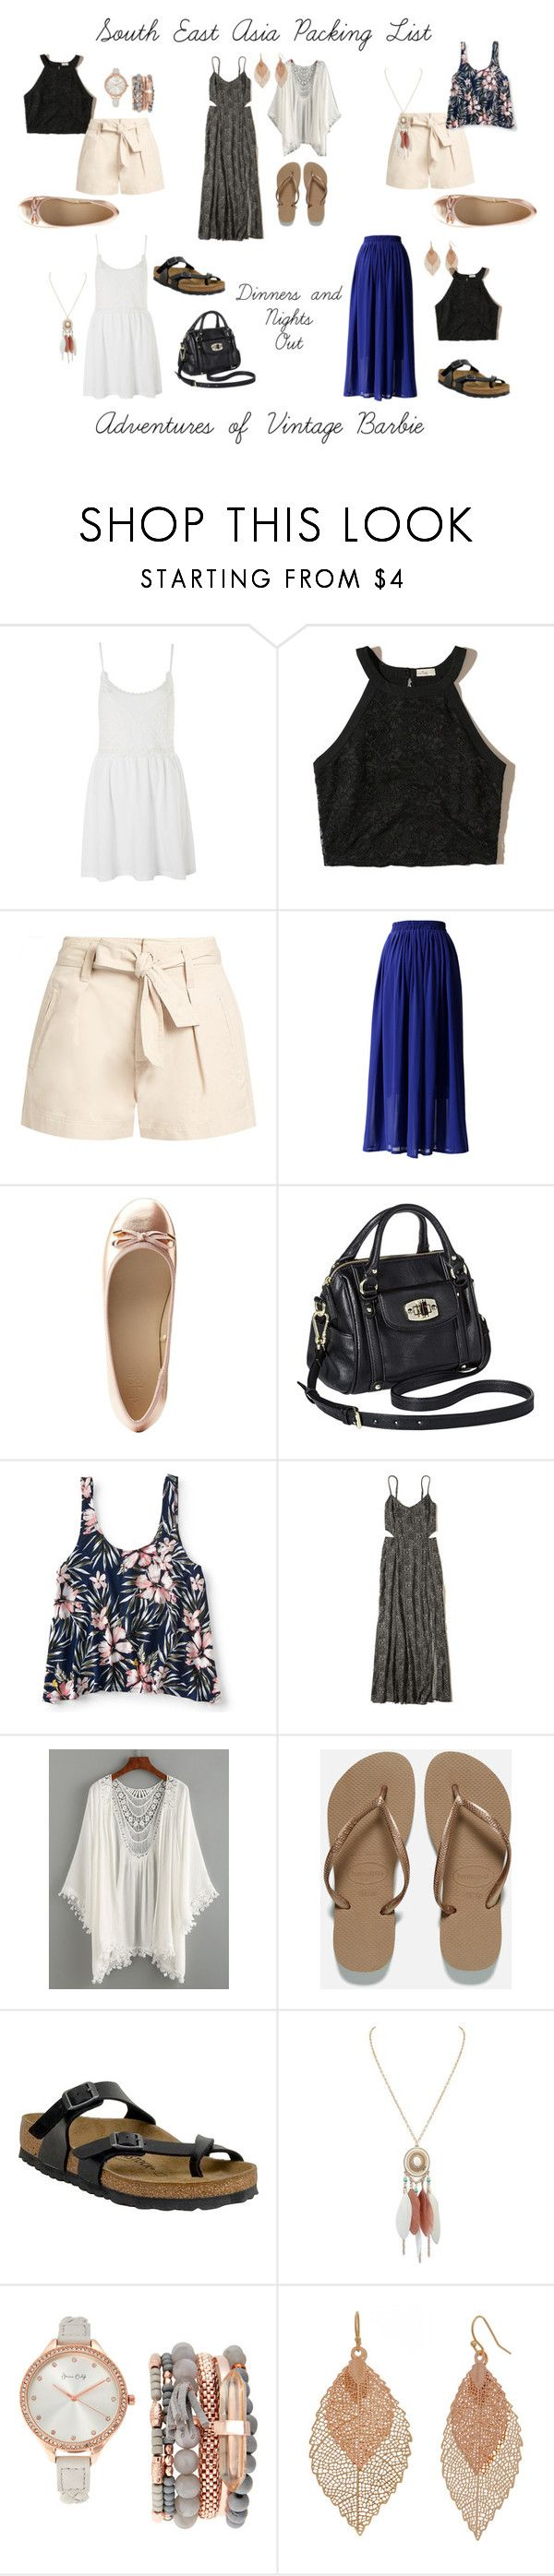 """""""South East Asia Packing List - Nights Out"""" by vintagebarbie17 on Polyvore featuring Topshop, Hollister Co., Étoile Isabel Marant, Chicwish, Charlotte Russe, Merona, Aéropostale, Havaianas, Birkenstock and Jessica Carlyle"""